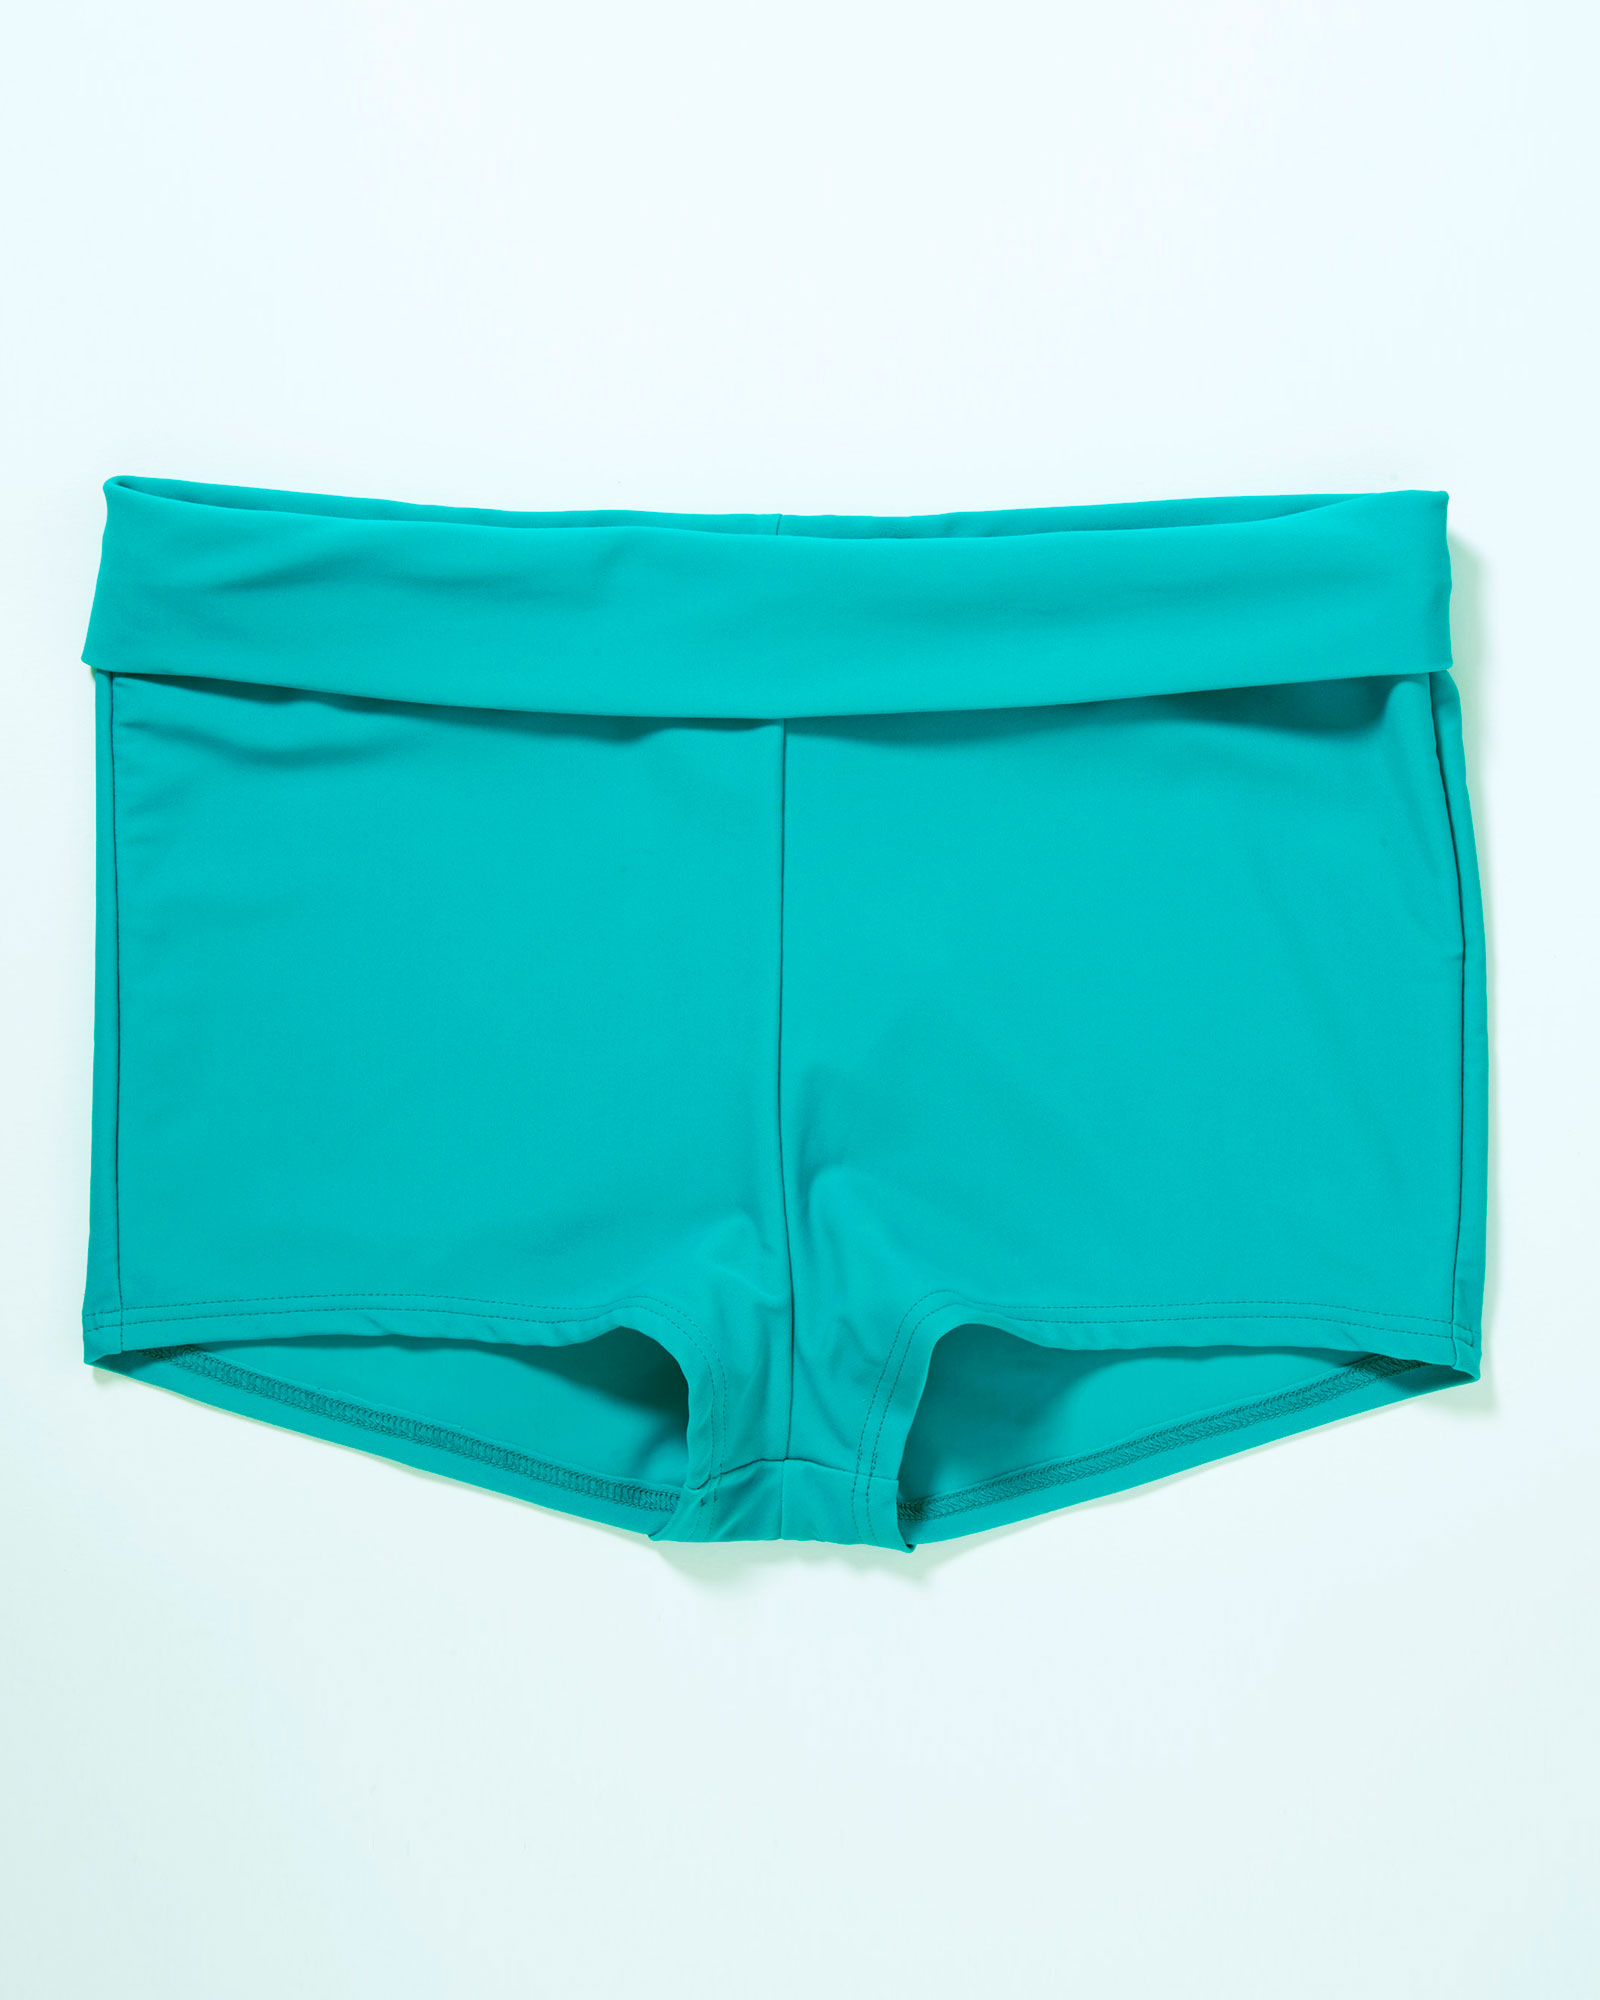 980fab6d67 Cotton Traders Women's Roll Top Tummy Control Short in Green (Clothing  Swimwear) photo